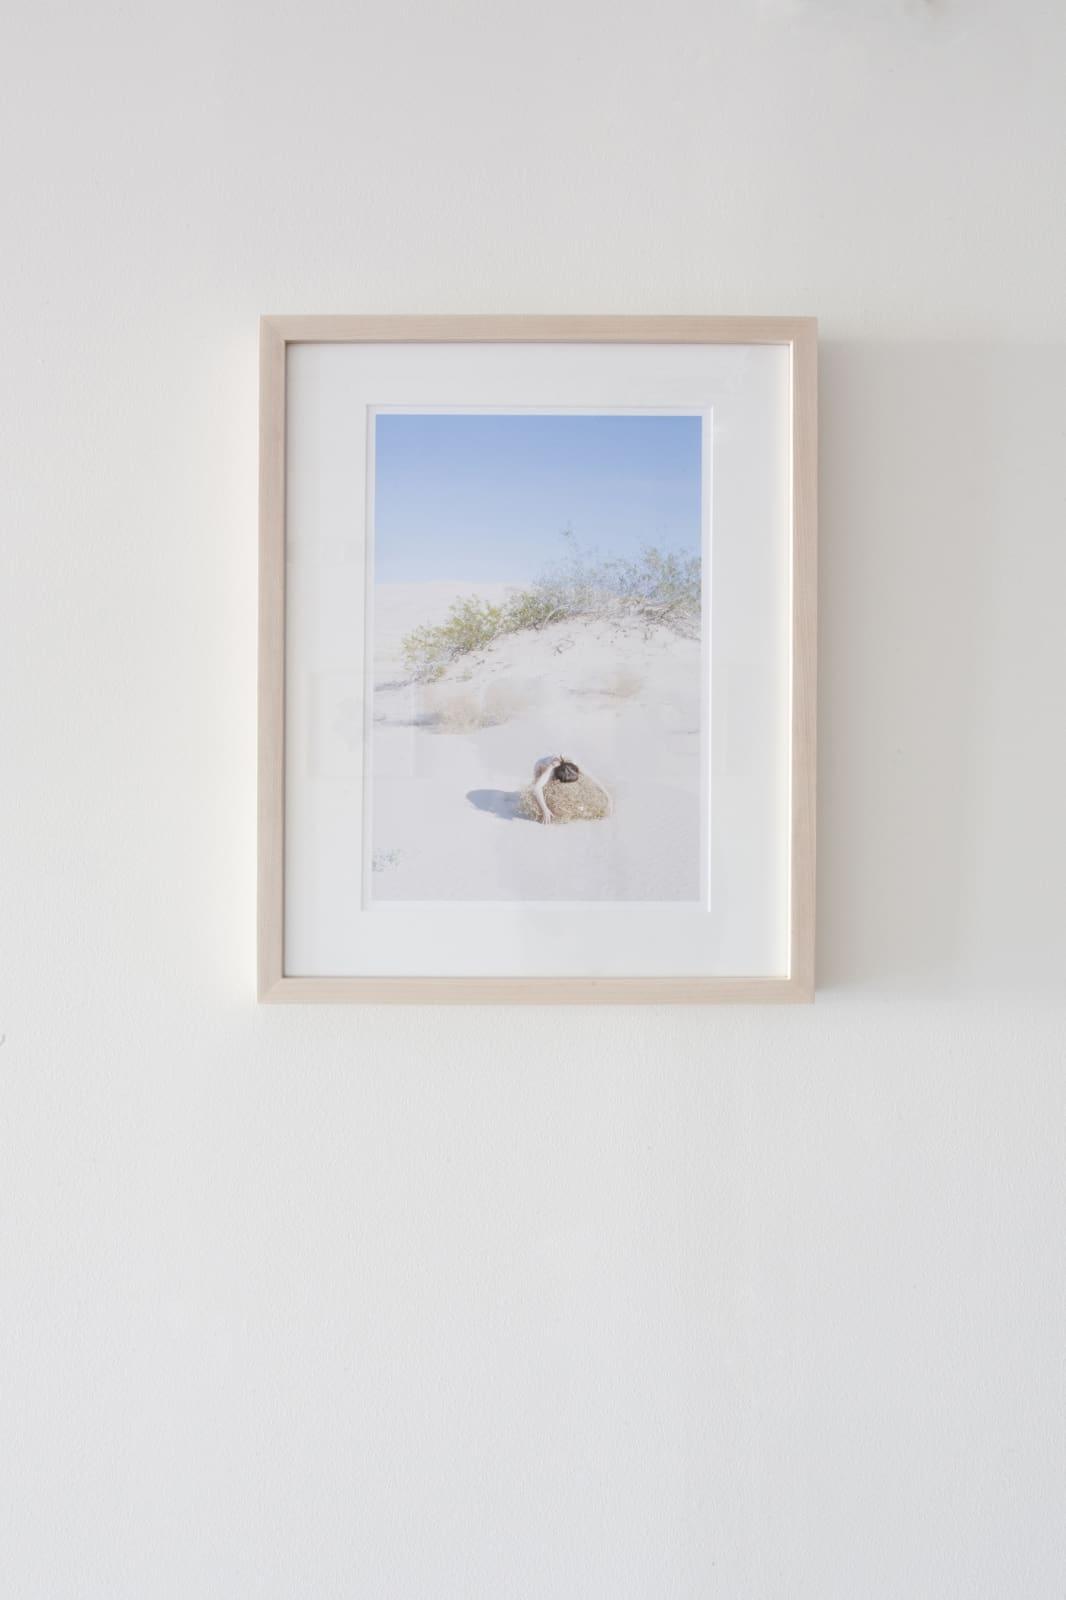 Grace Clark Kelso Dunes I, 2017 digital pigment print print size 15 x 10 inches, 20 x 16 framed, edition 1/10 $ 650.00